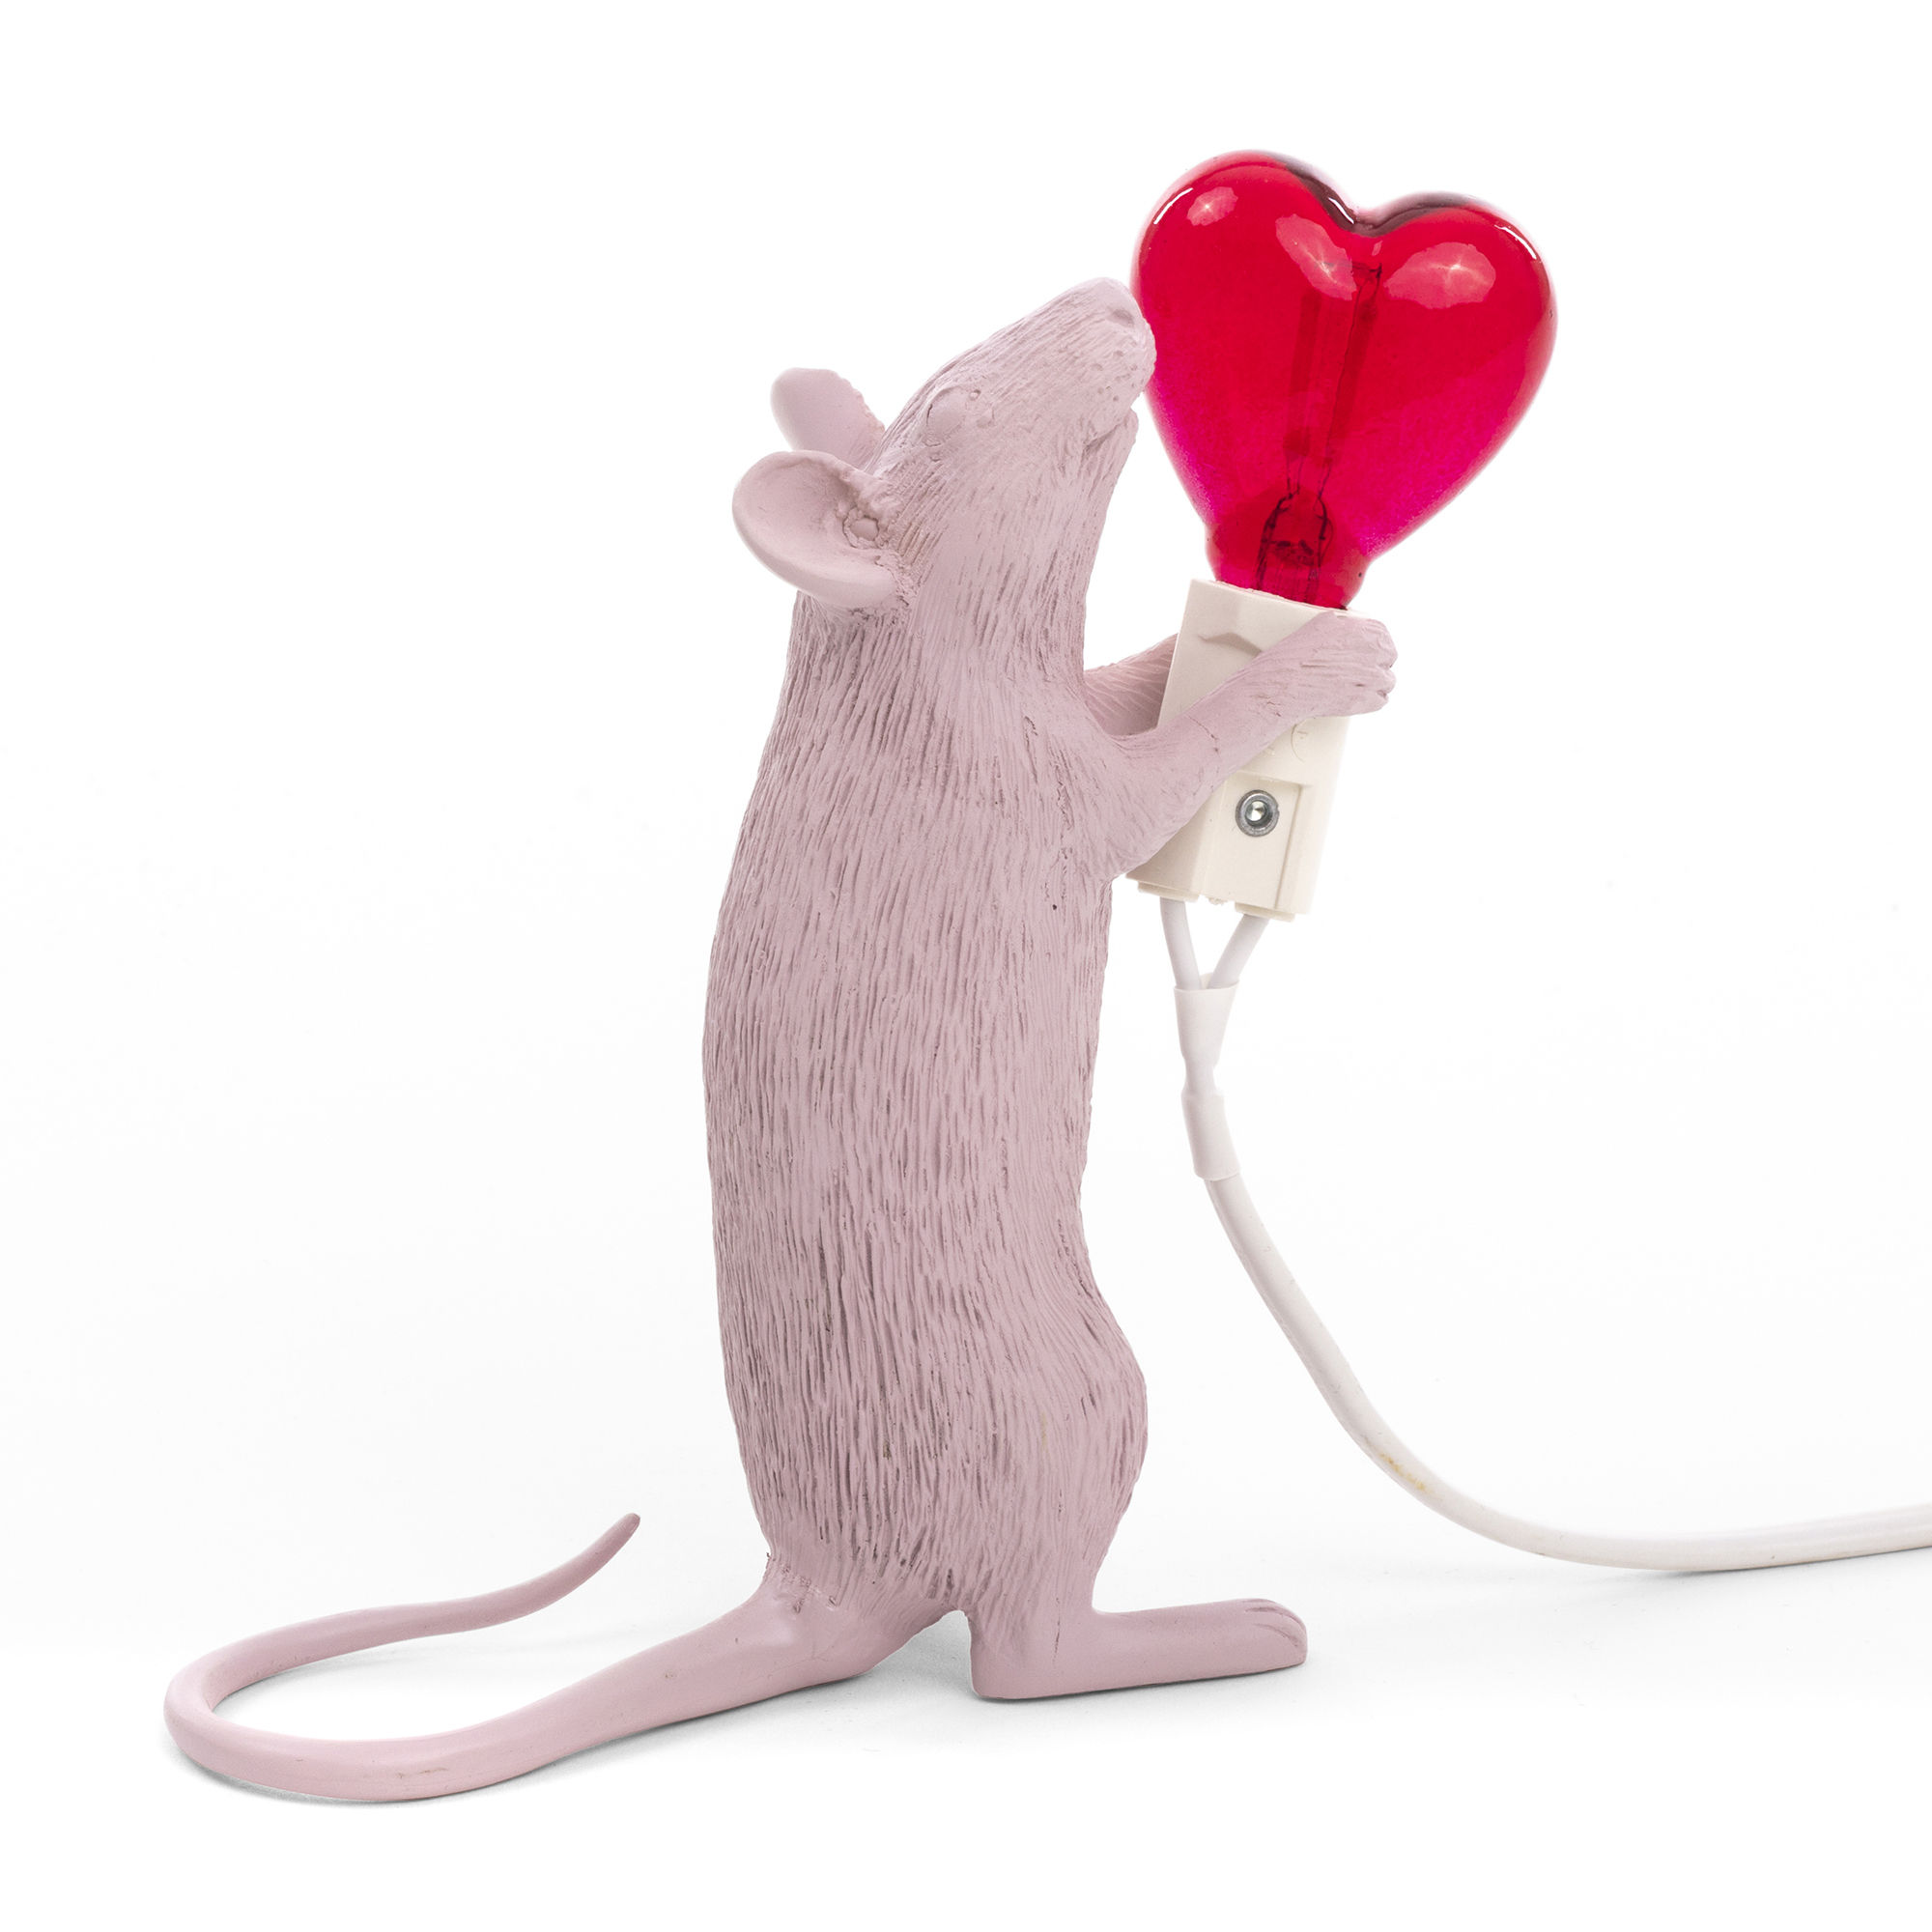 Decoration - Children's Home Accessories - Mouse Sitting #2 Table lamp - / Valentines Limited edition by Seletti - Pink mouse / Red heart bulb - Resin